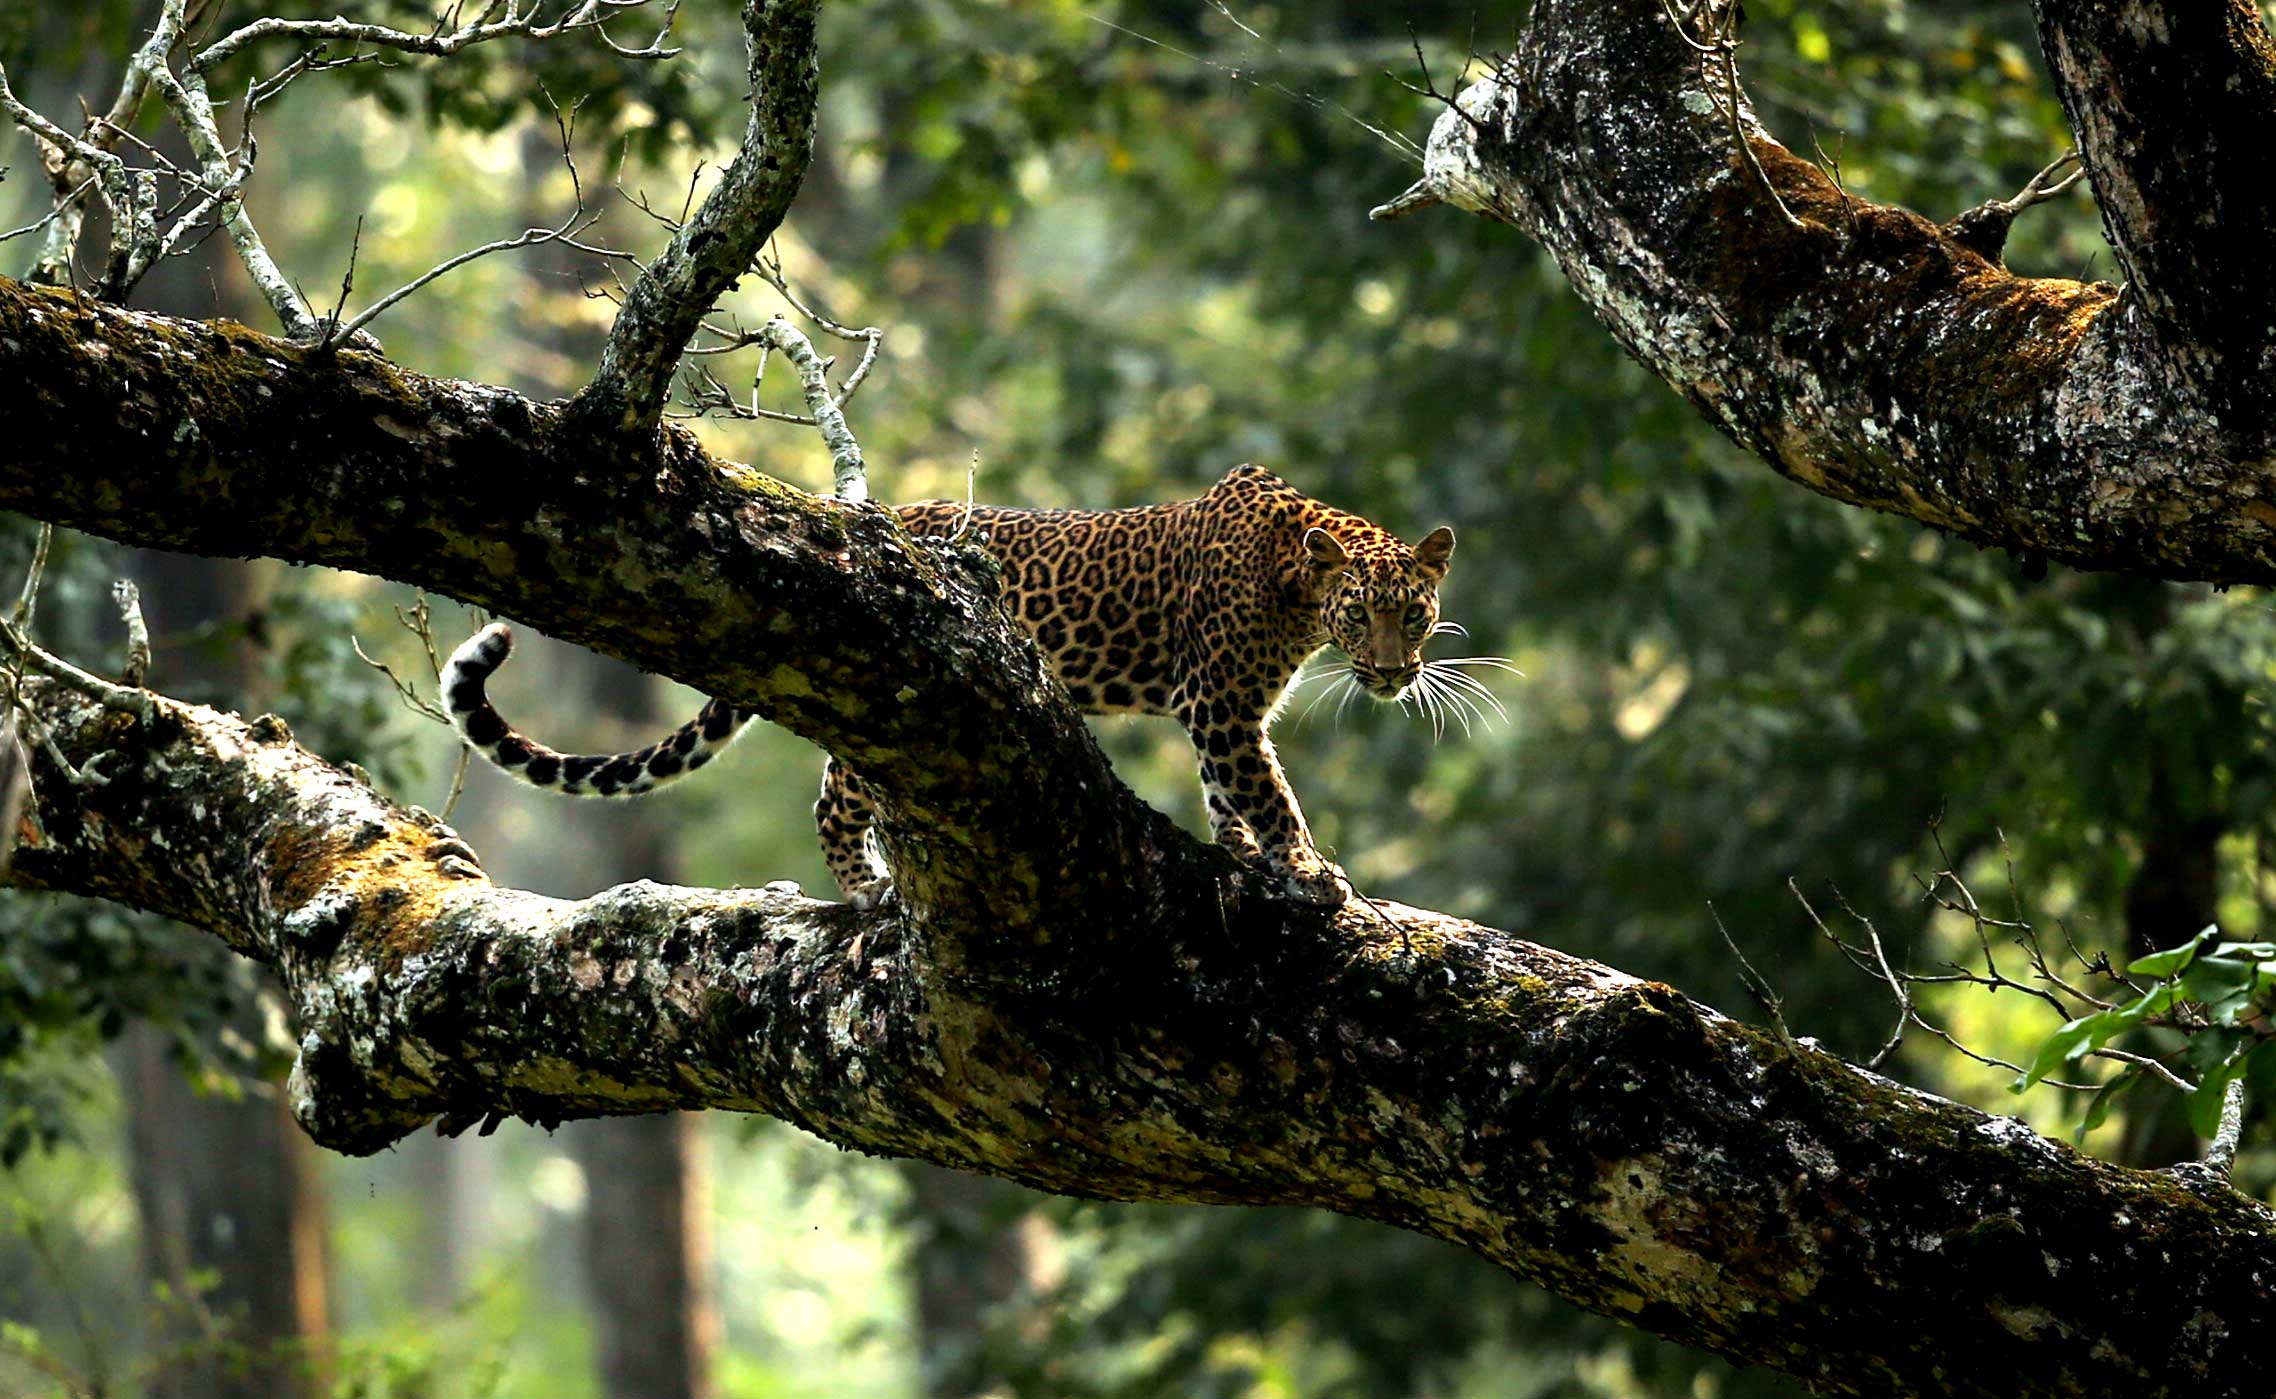 A leopard in its natural habitat in Karantaka, India.